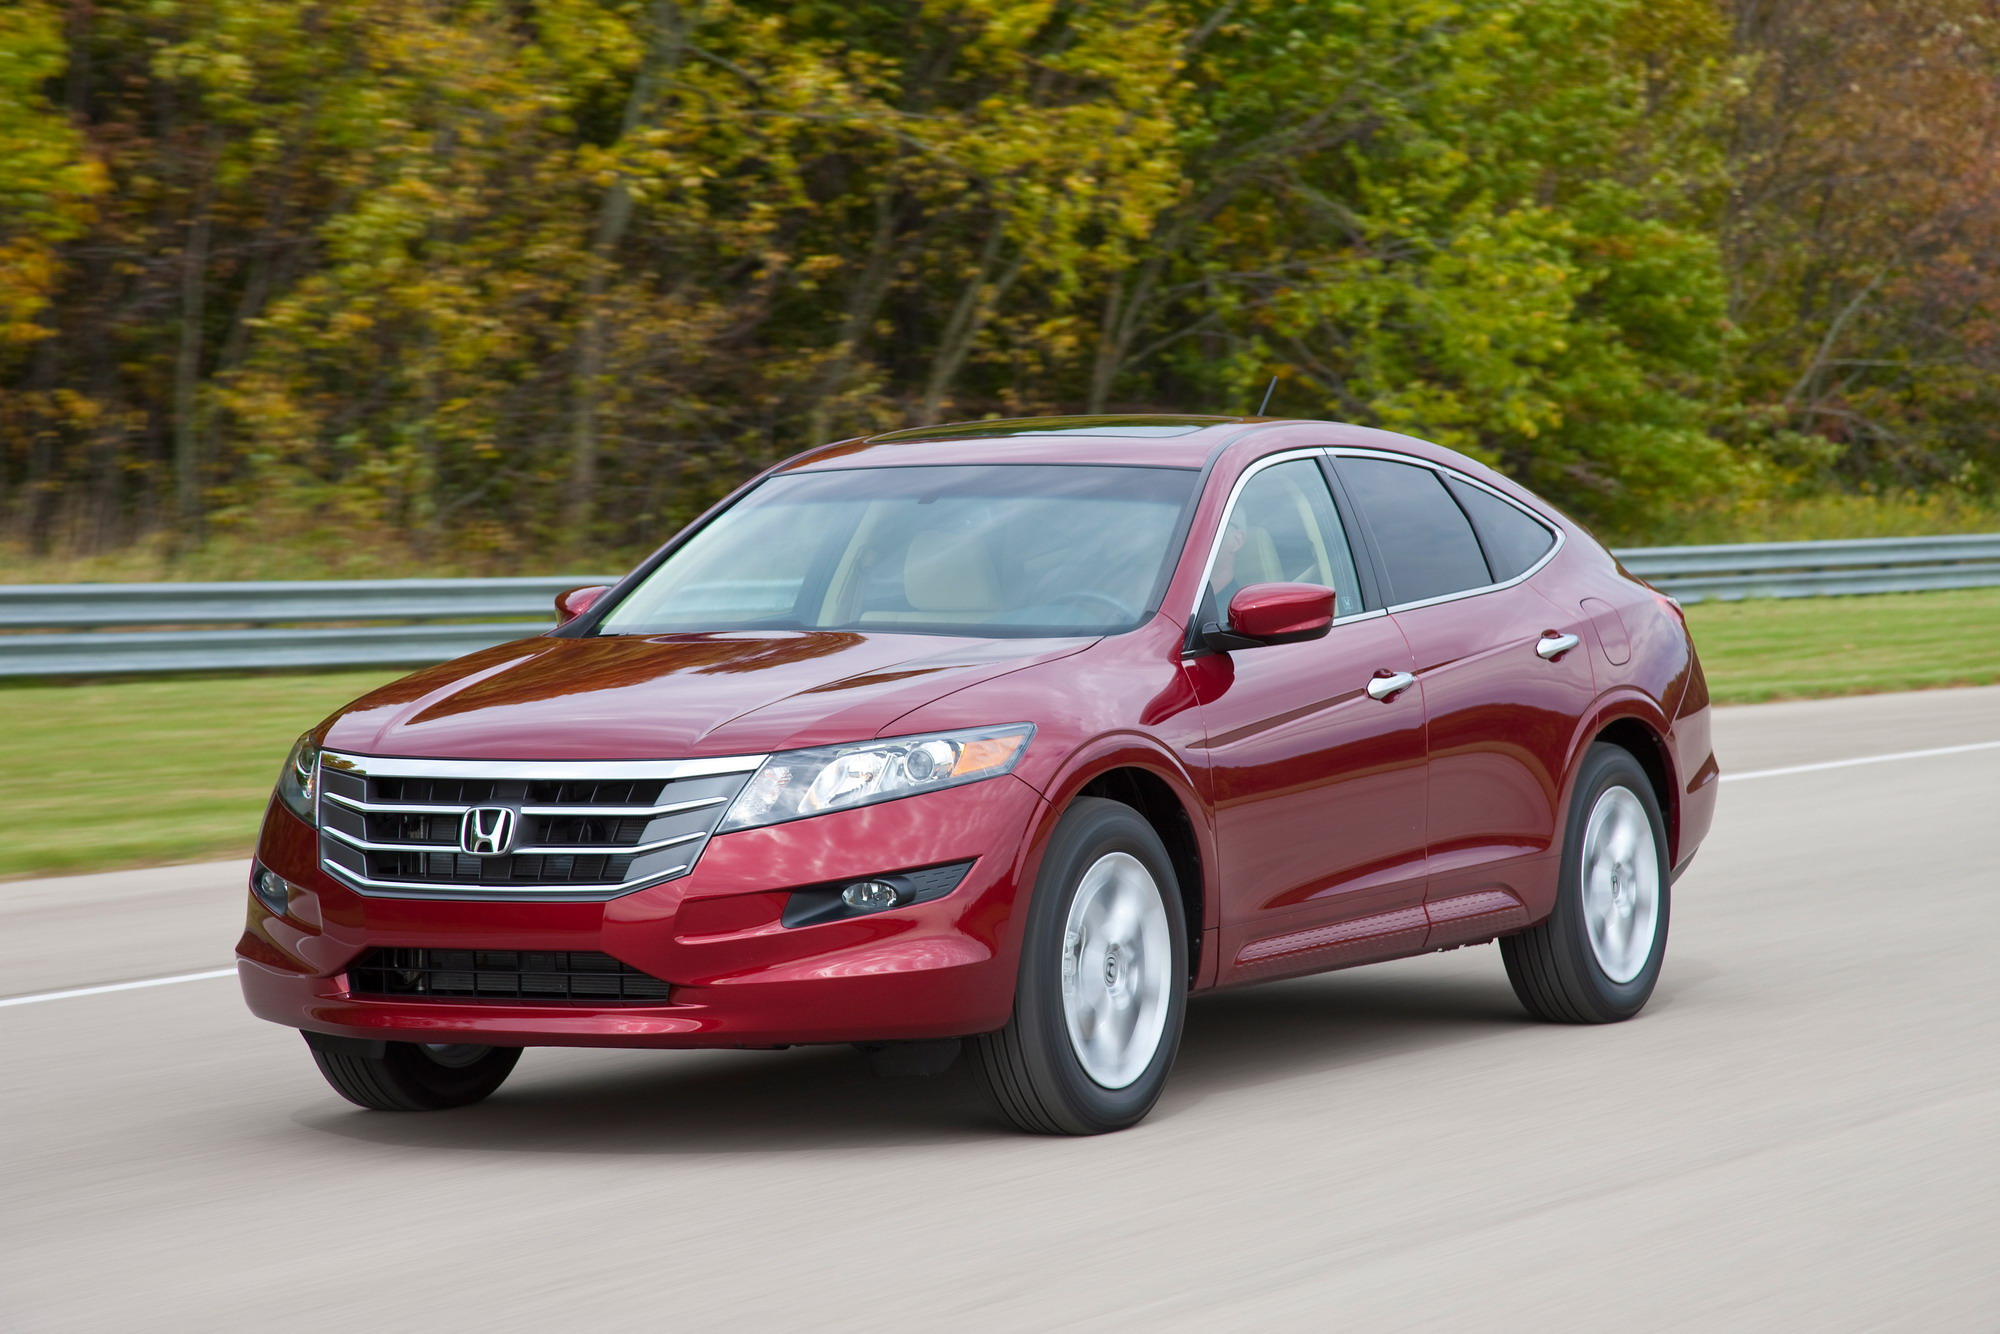 2011 honda accord crosstour gallery 385355 top speed. Black Bedroom Furniture Sets. Home Design Ideas